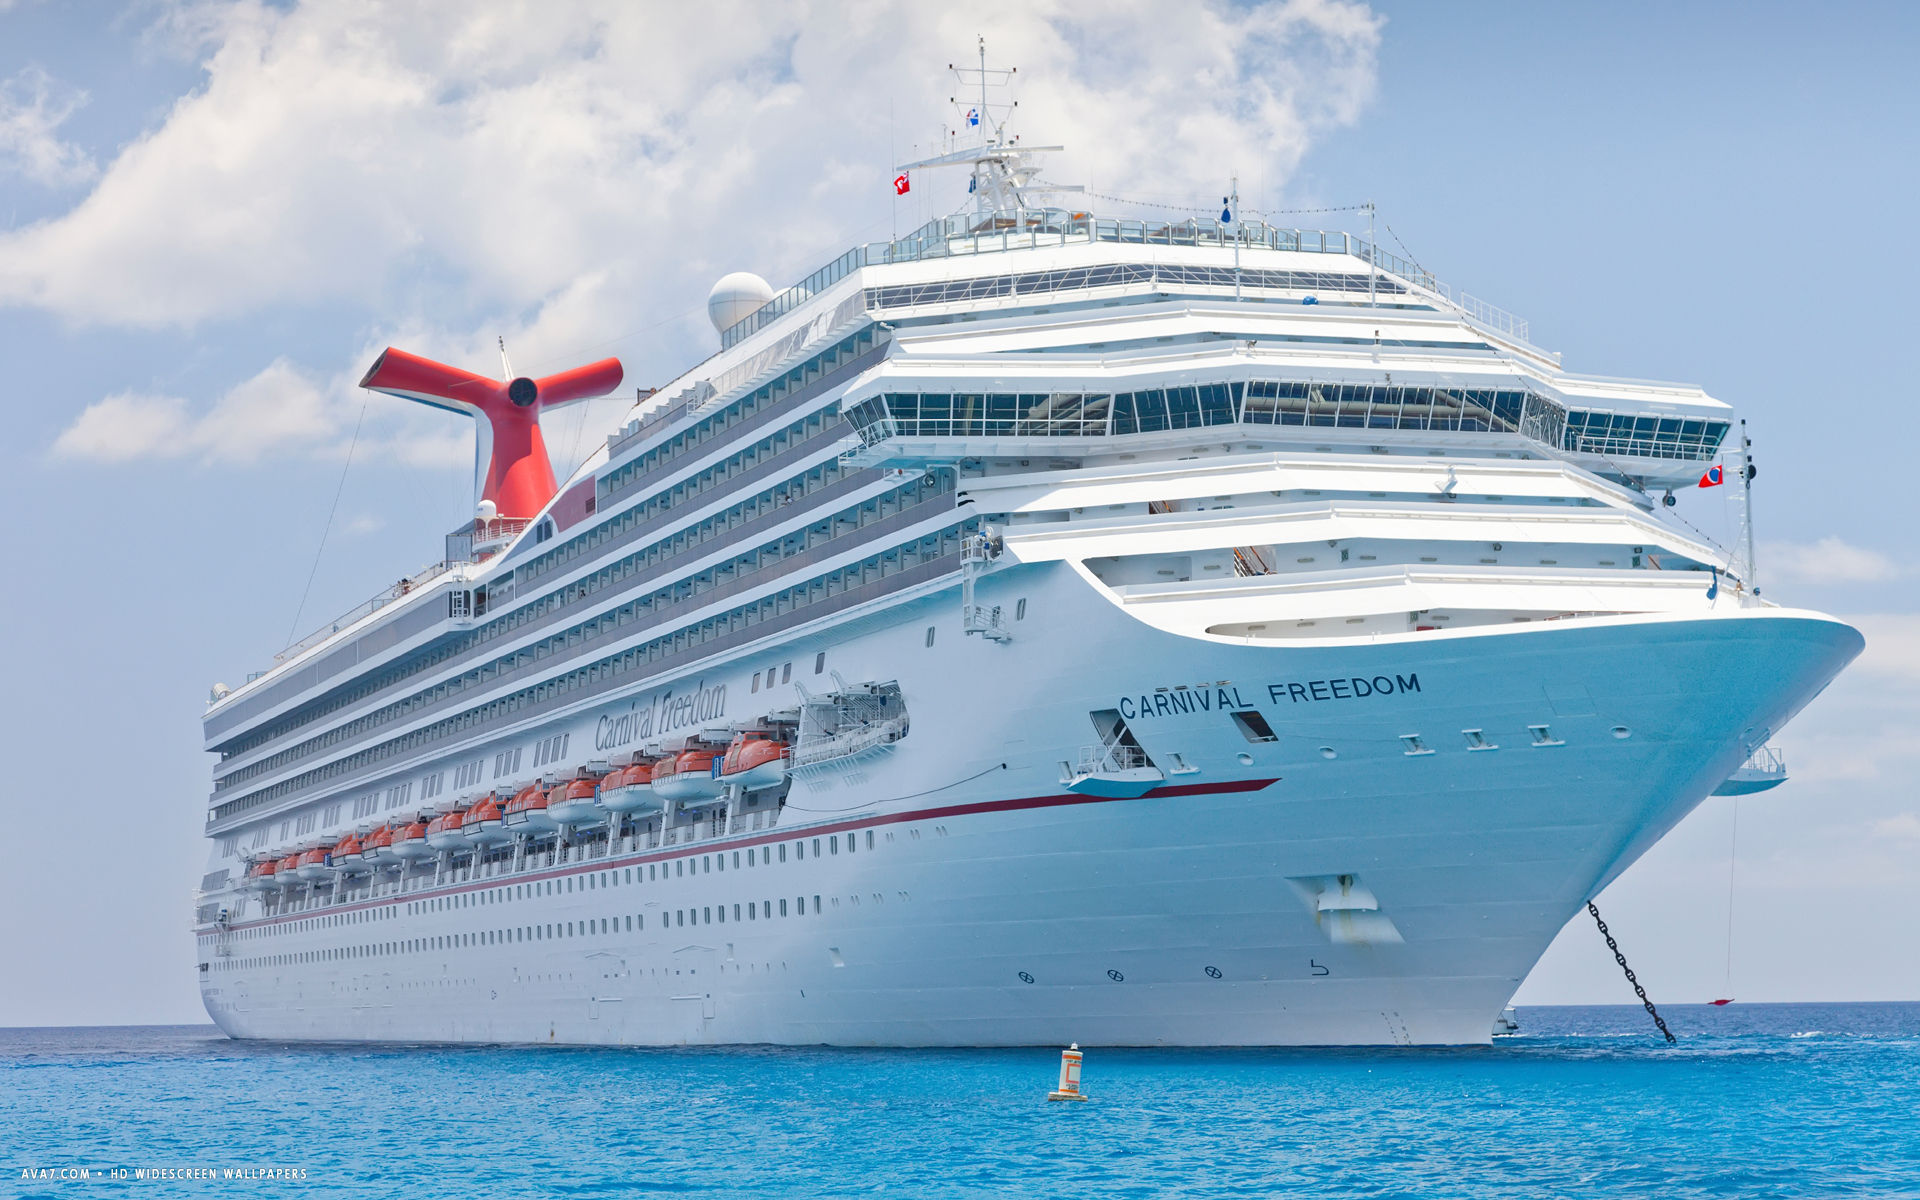 carnival freedom cruise ship hd widescreen wallpaper cruise ships 1920x1200